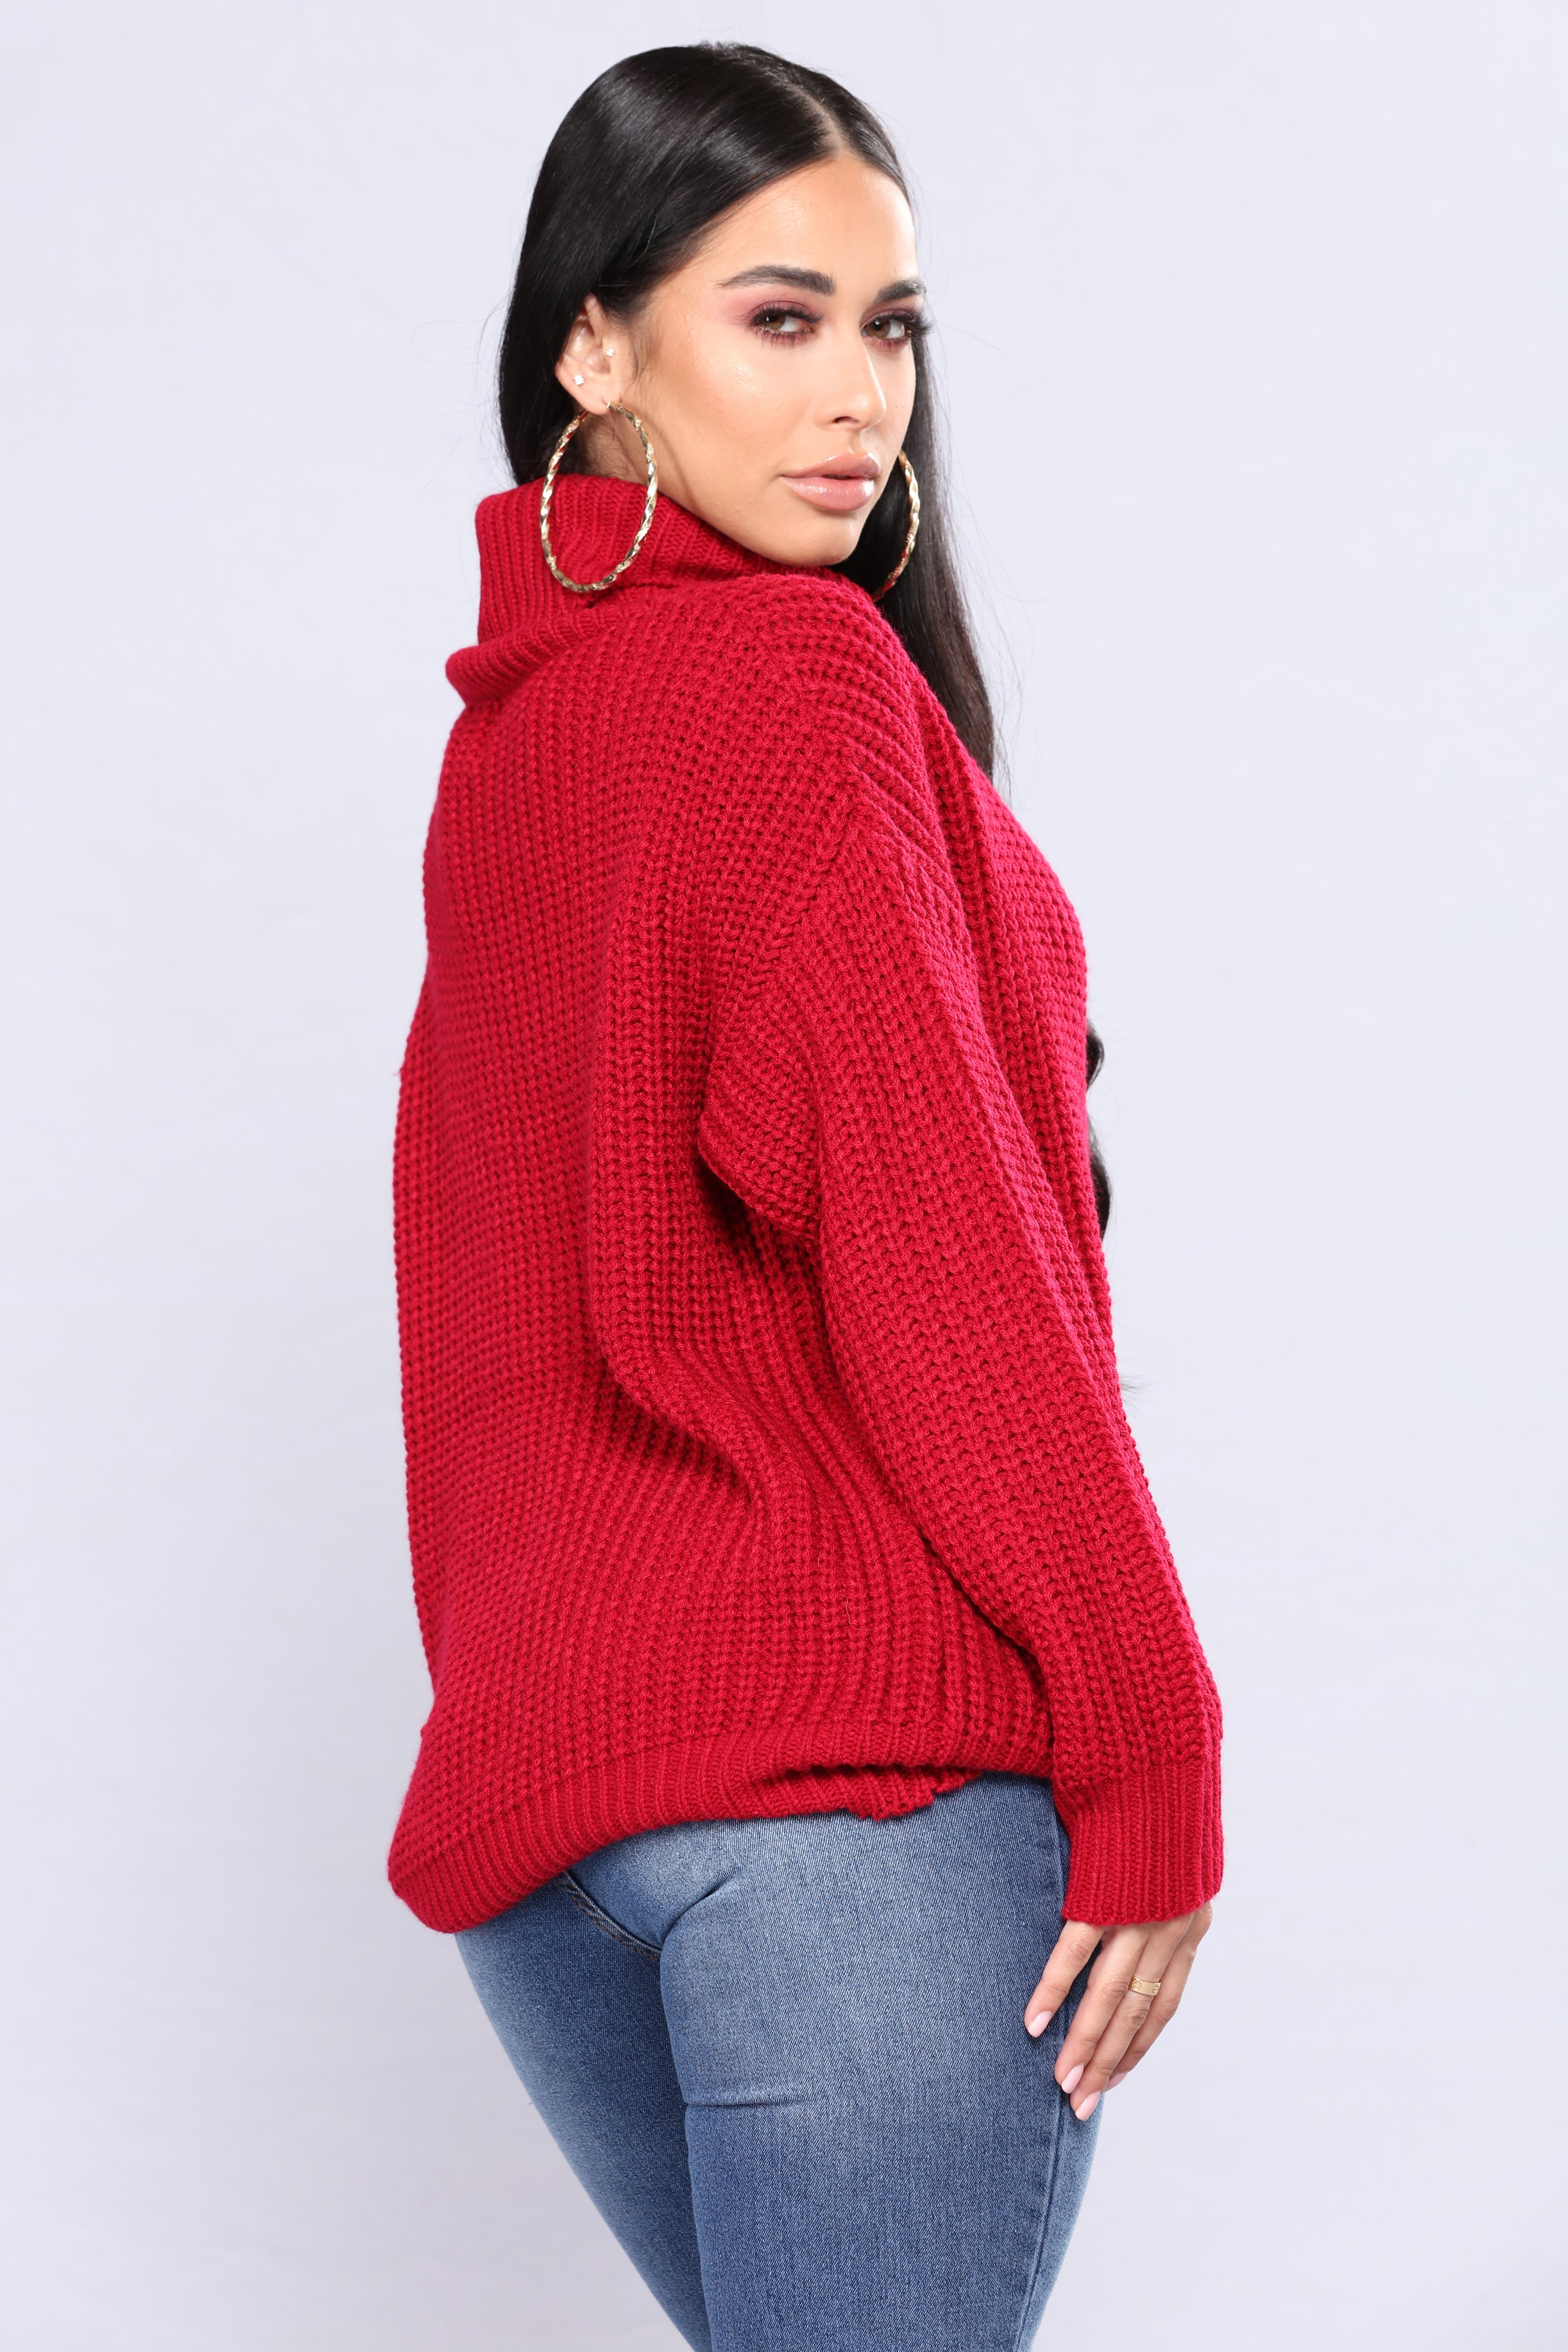 Buy red turtleneck sweater at affordable price from downiloadojg.gq online retro store. Free shipping worldwide.